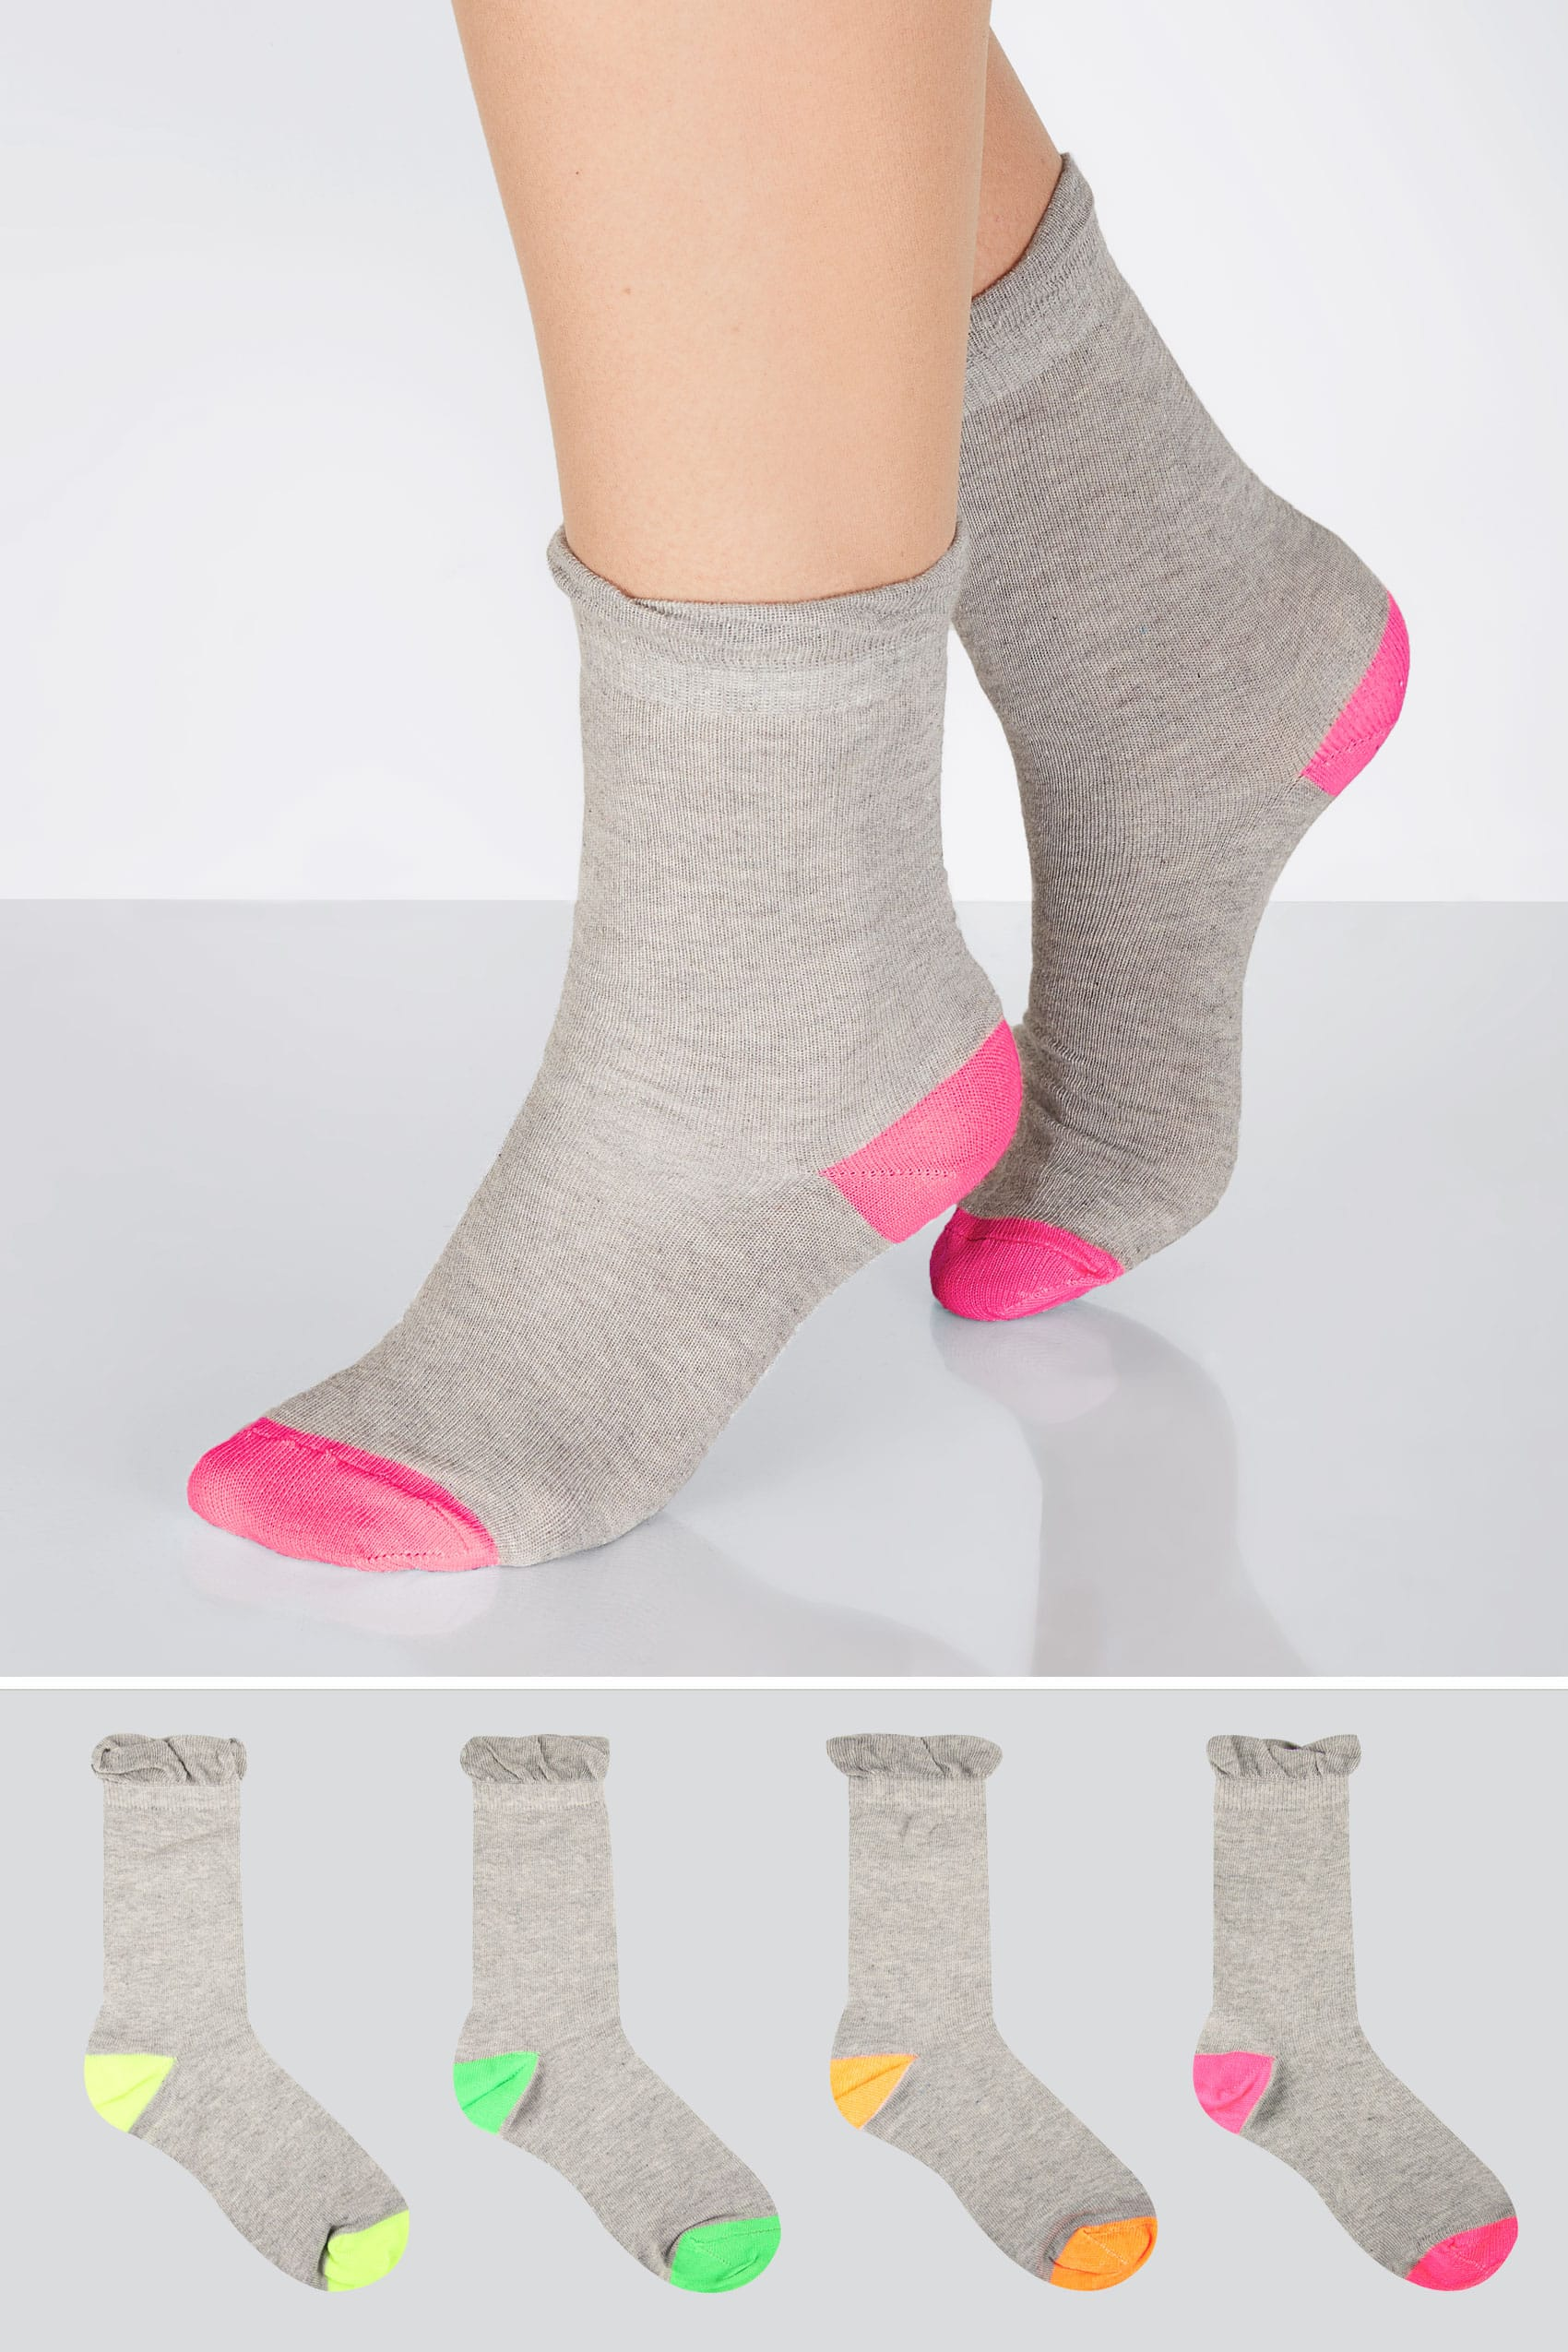 Grey 4 pair pack coloured heel toe socks in extra wide fit for Buy here pay later